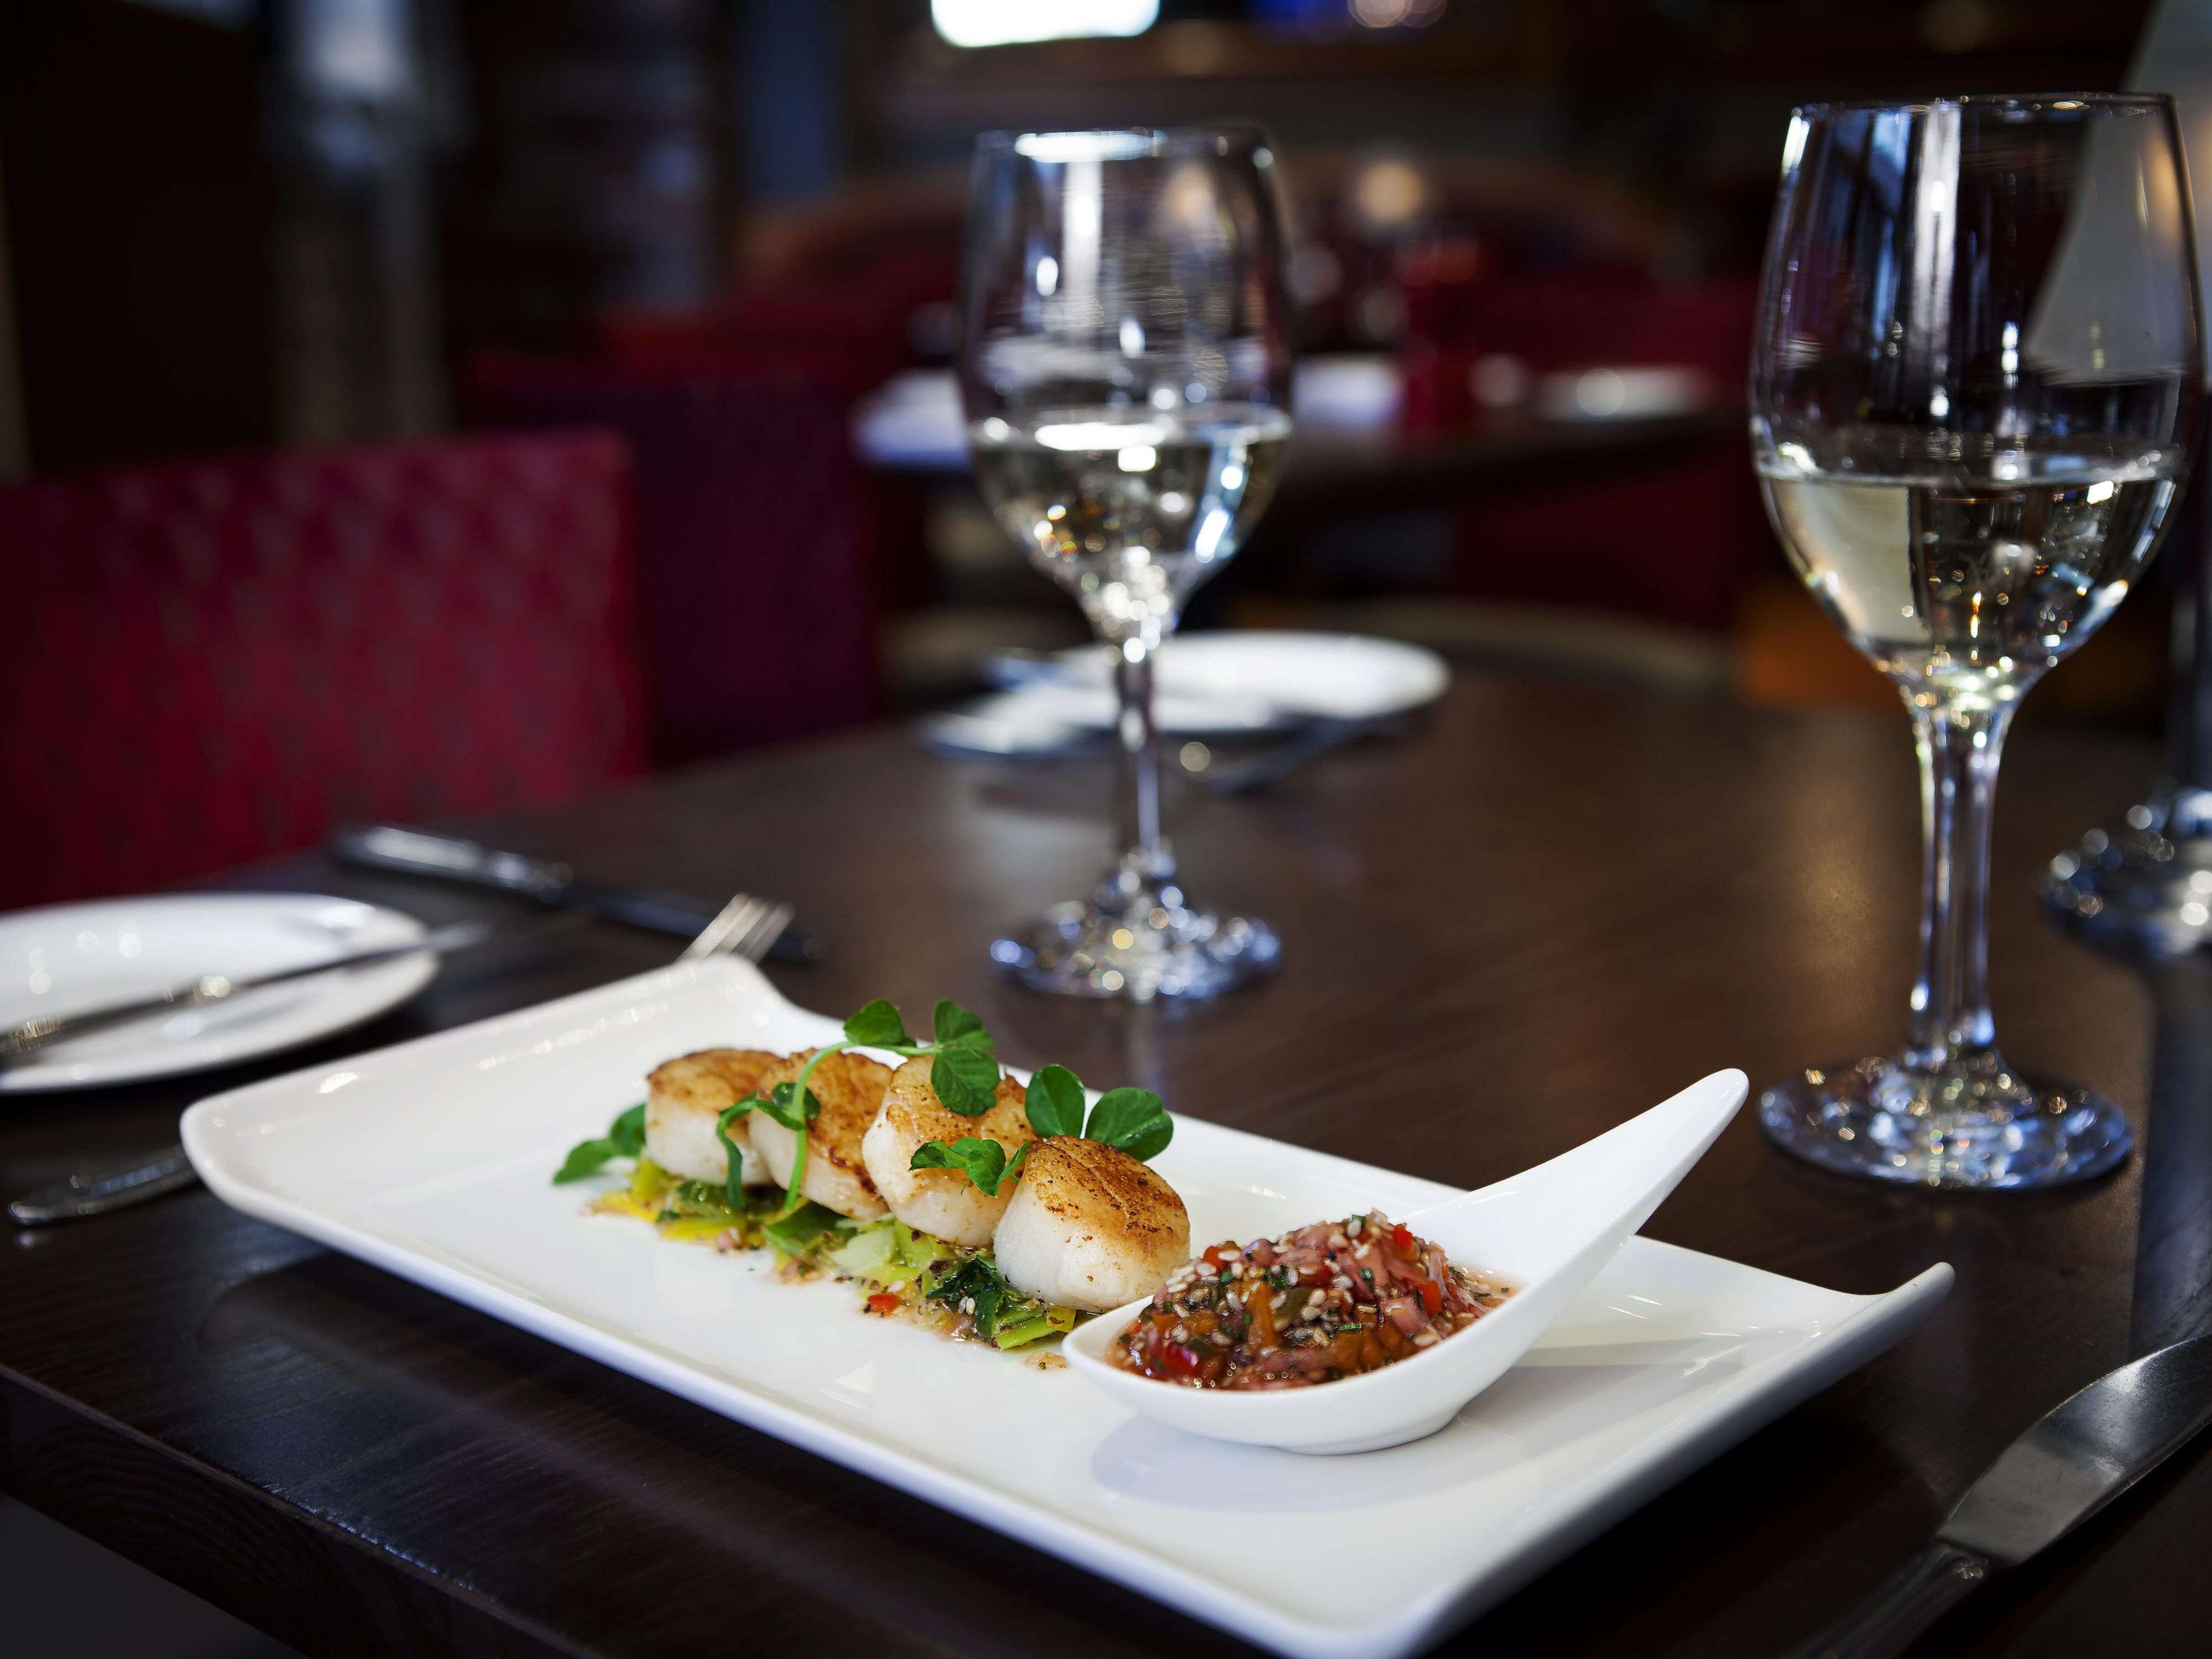 Locally sourced scallops with wine from our extensive wine list